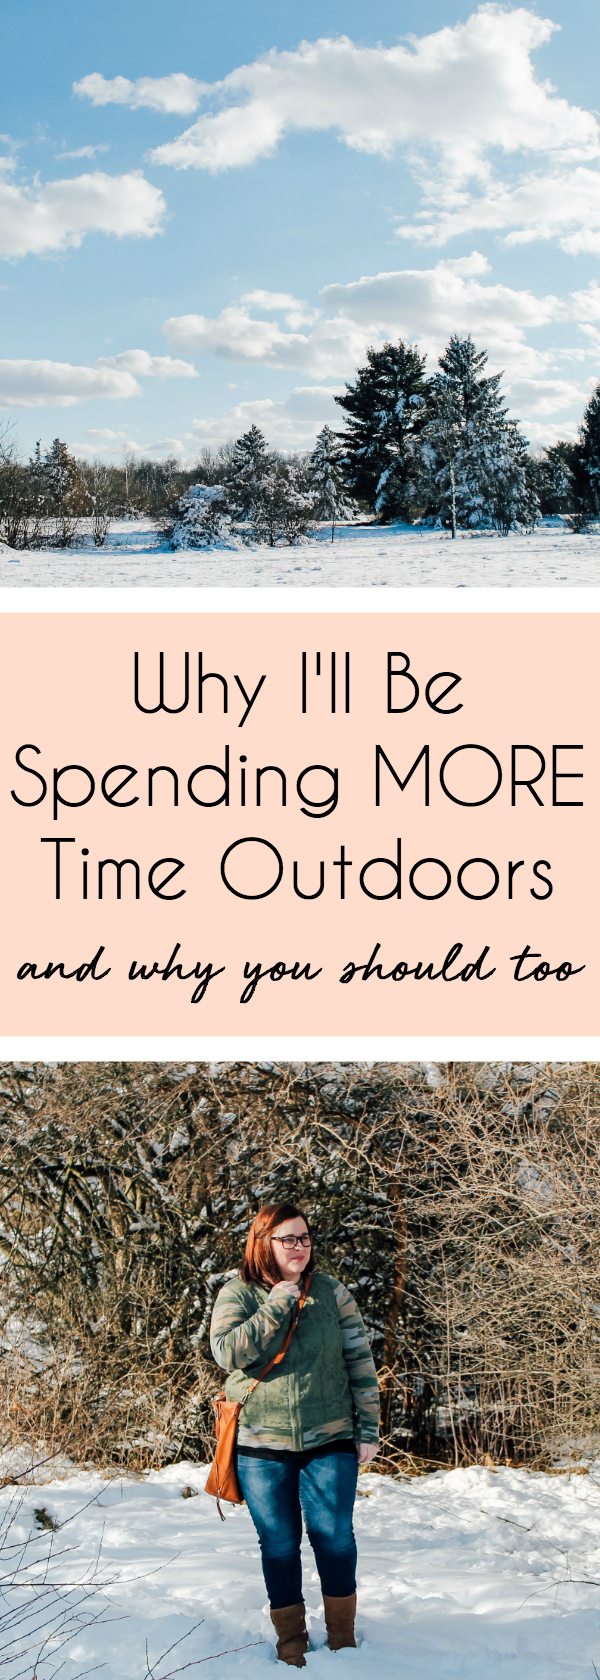 Why I'll Be Spending More Time Outdoors